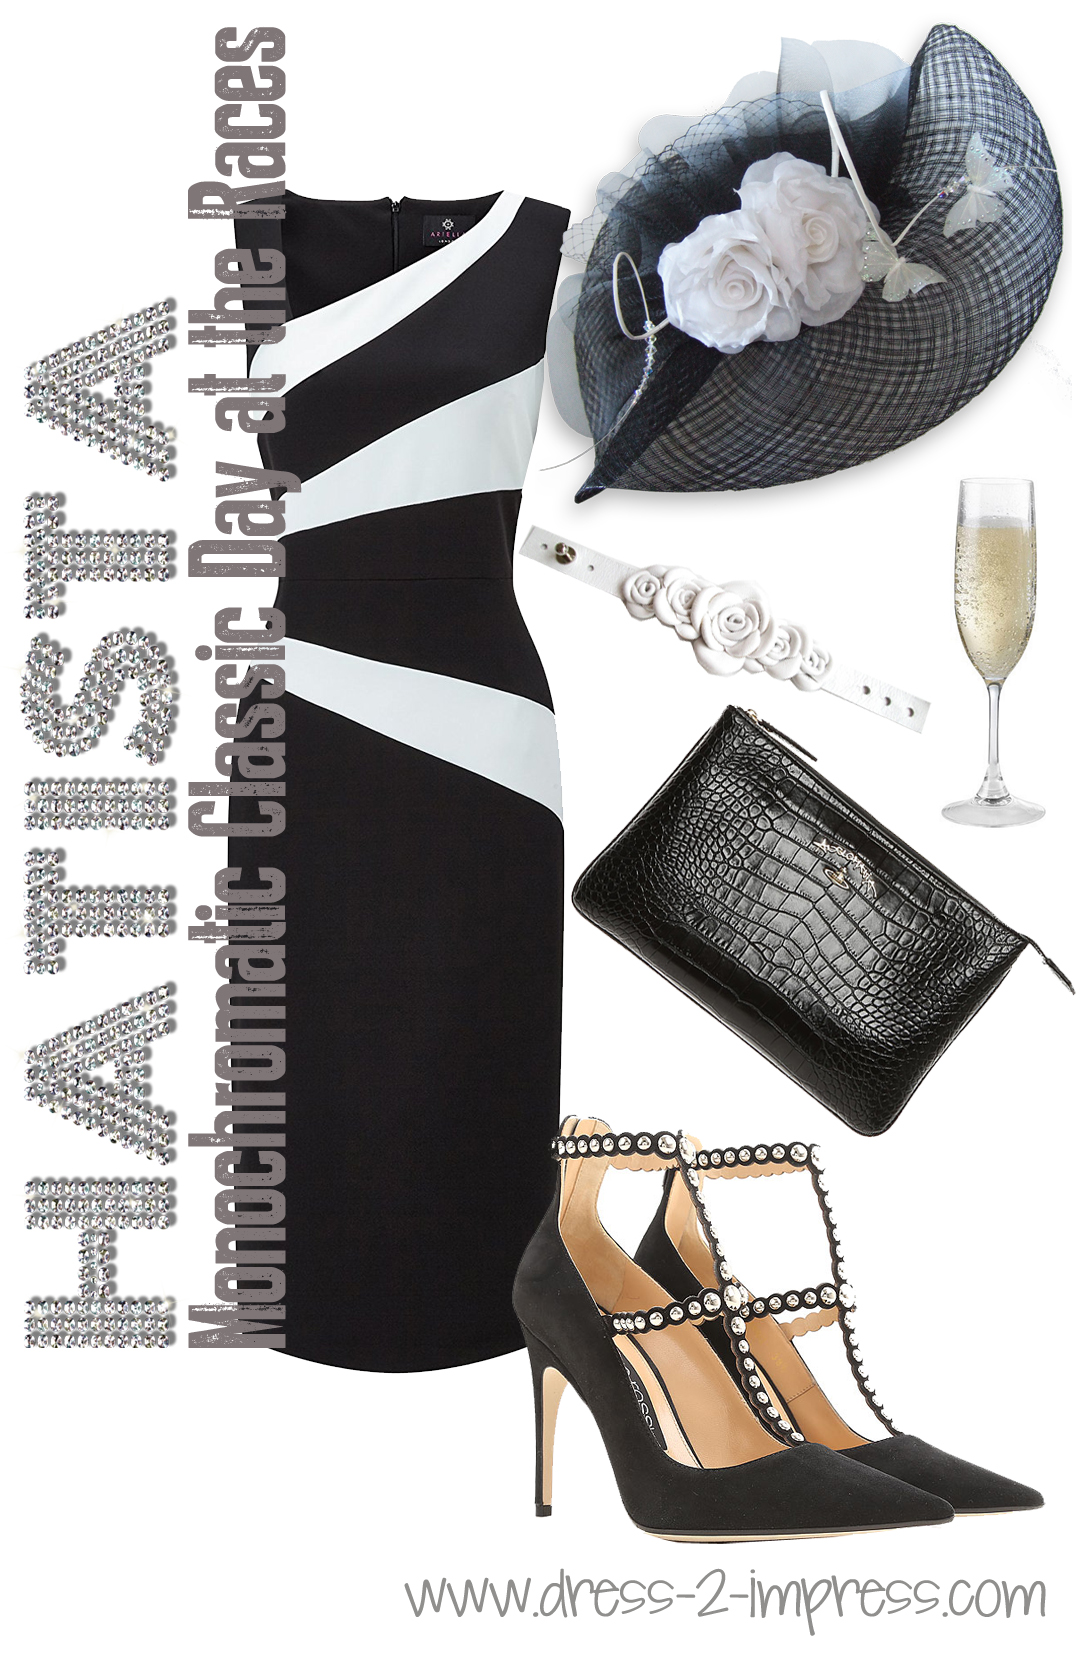 Hatista Monochrome Black And White Outfits For The Races What To Wear For Royal Ascot Races Outfits For Royal Ascot How To Dress For Royal Ascot